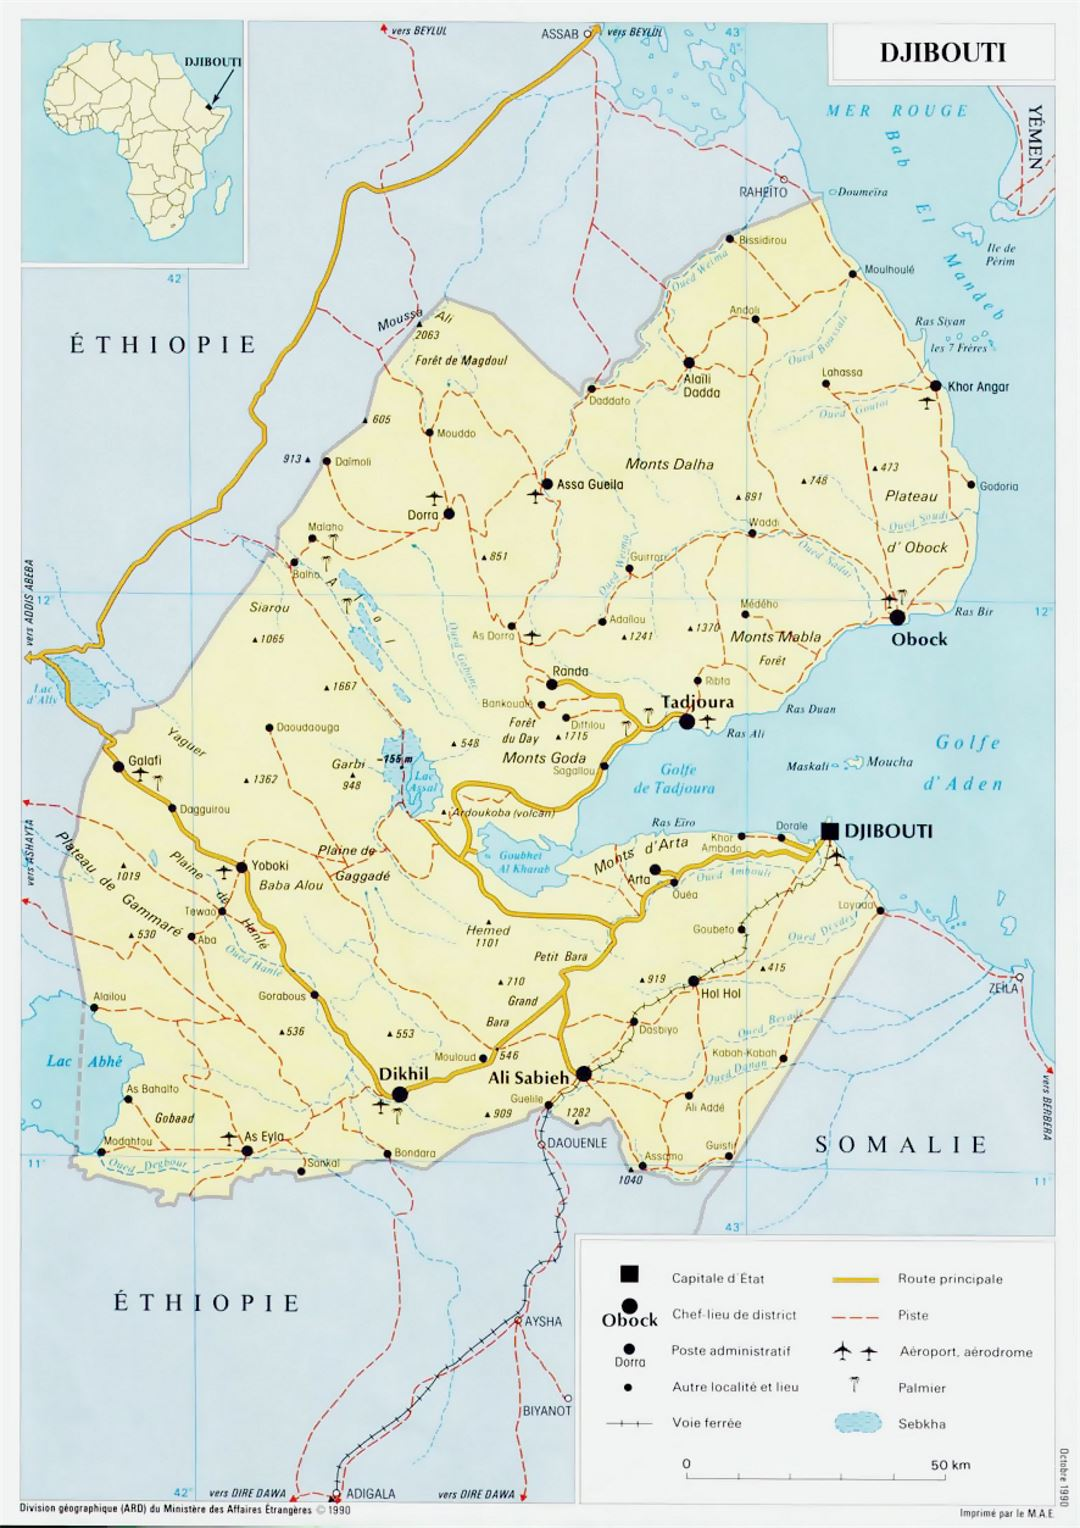 Detailed political map of Djibouti with roads, railroads, cities and airports